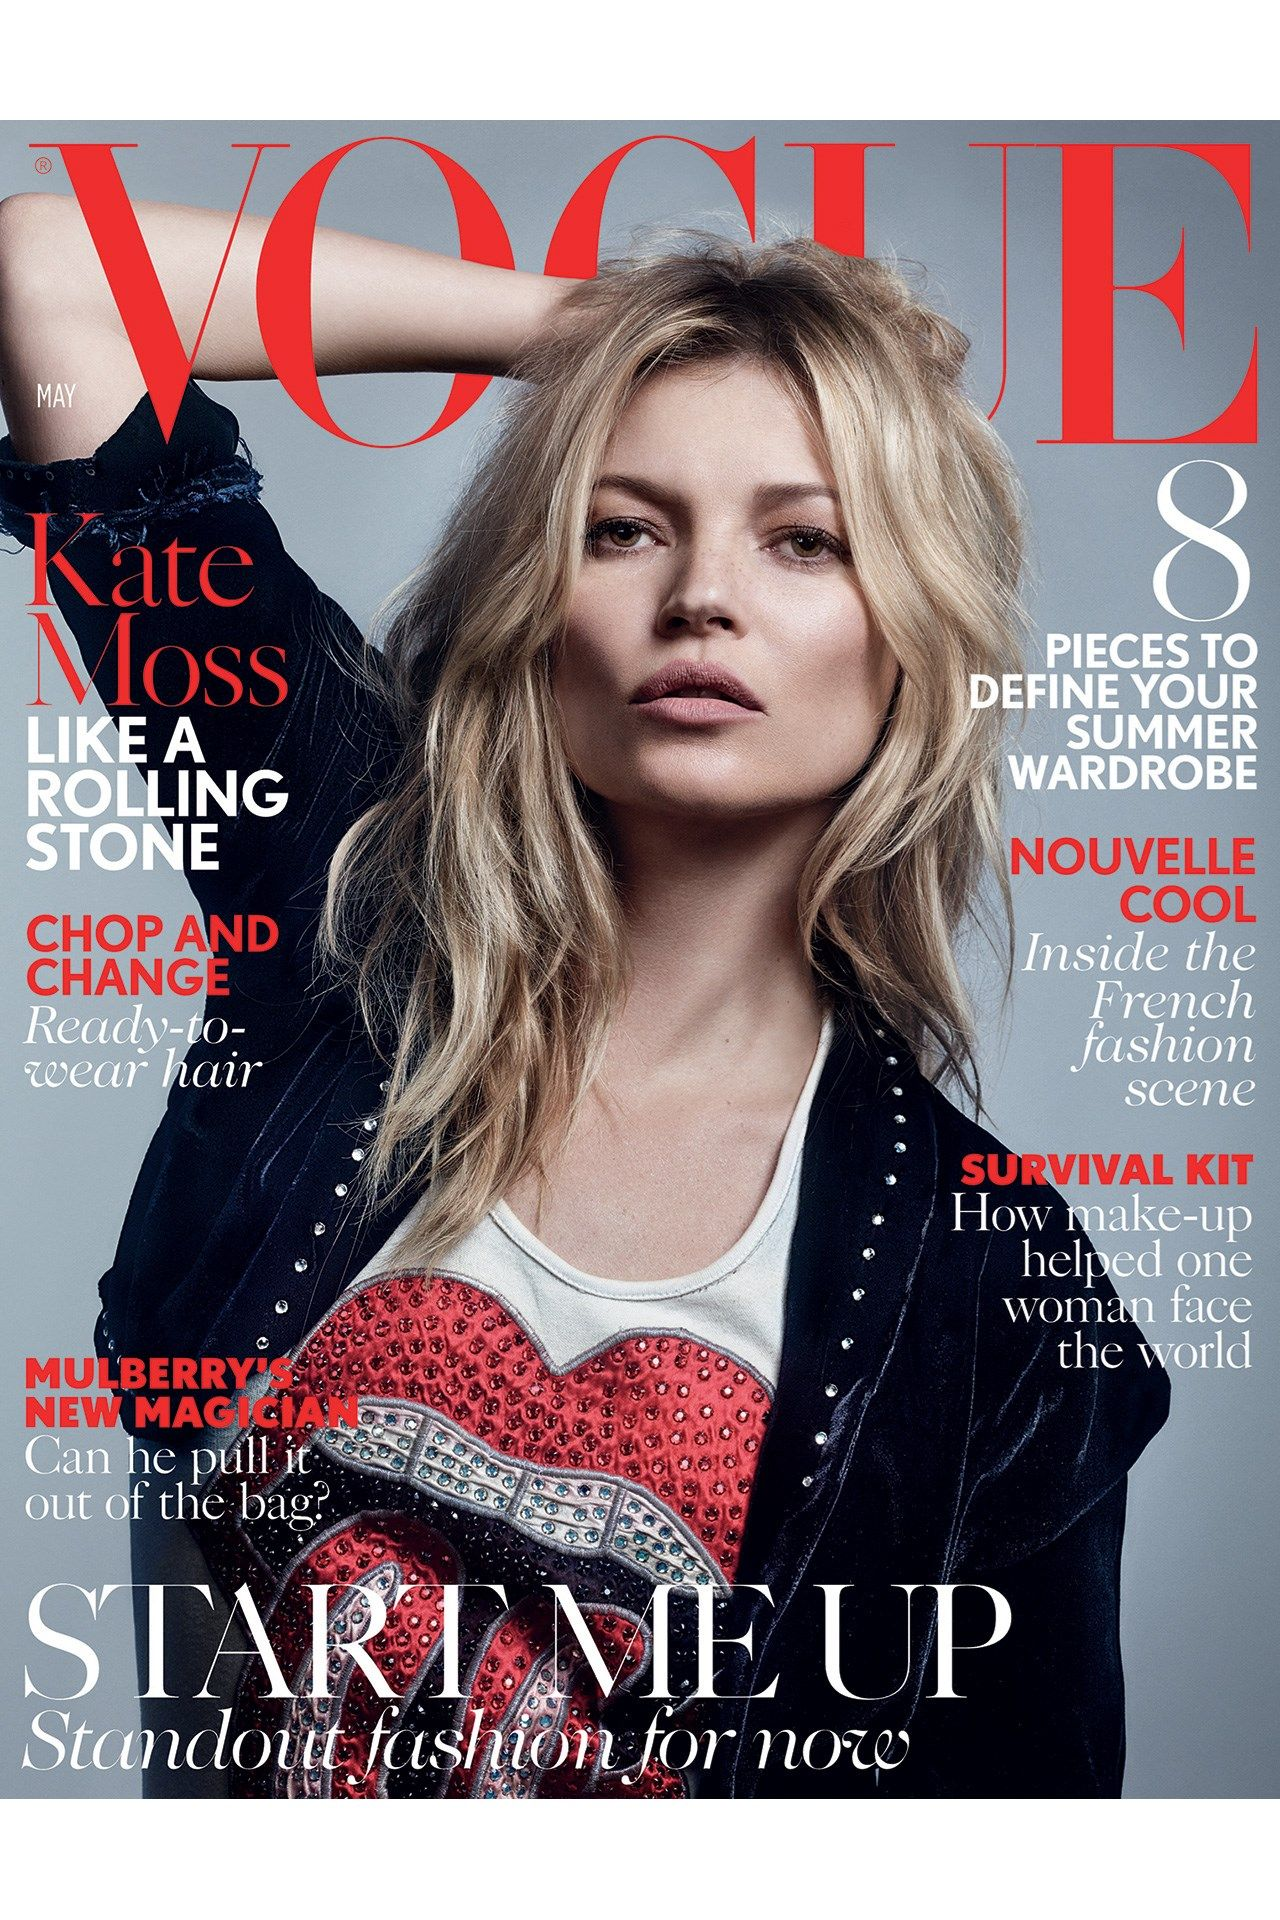 Kate Moss Covers May Vogue | Обложки | Vogue covers, Kate moss